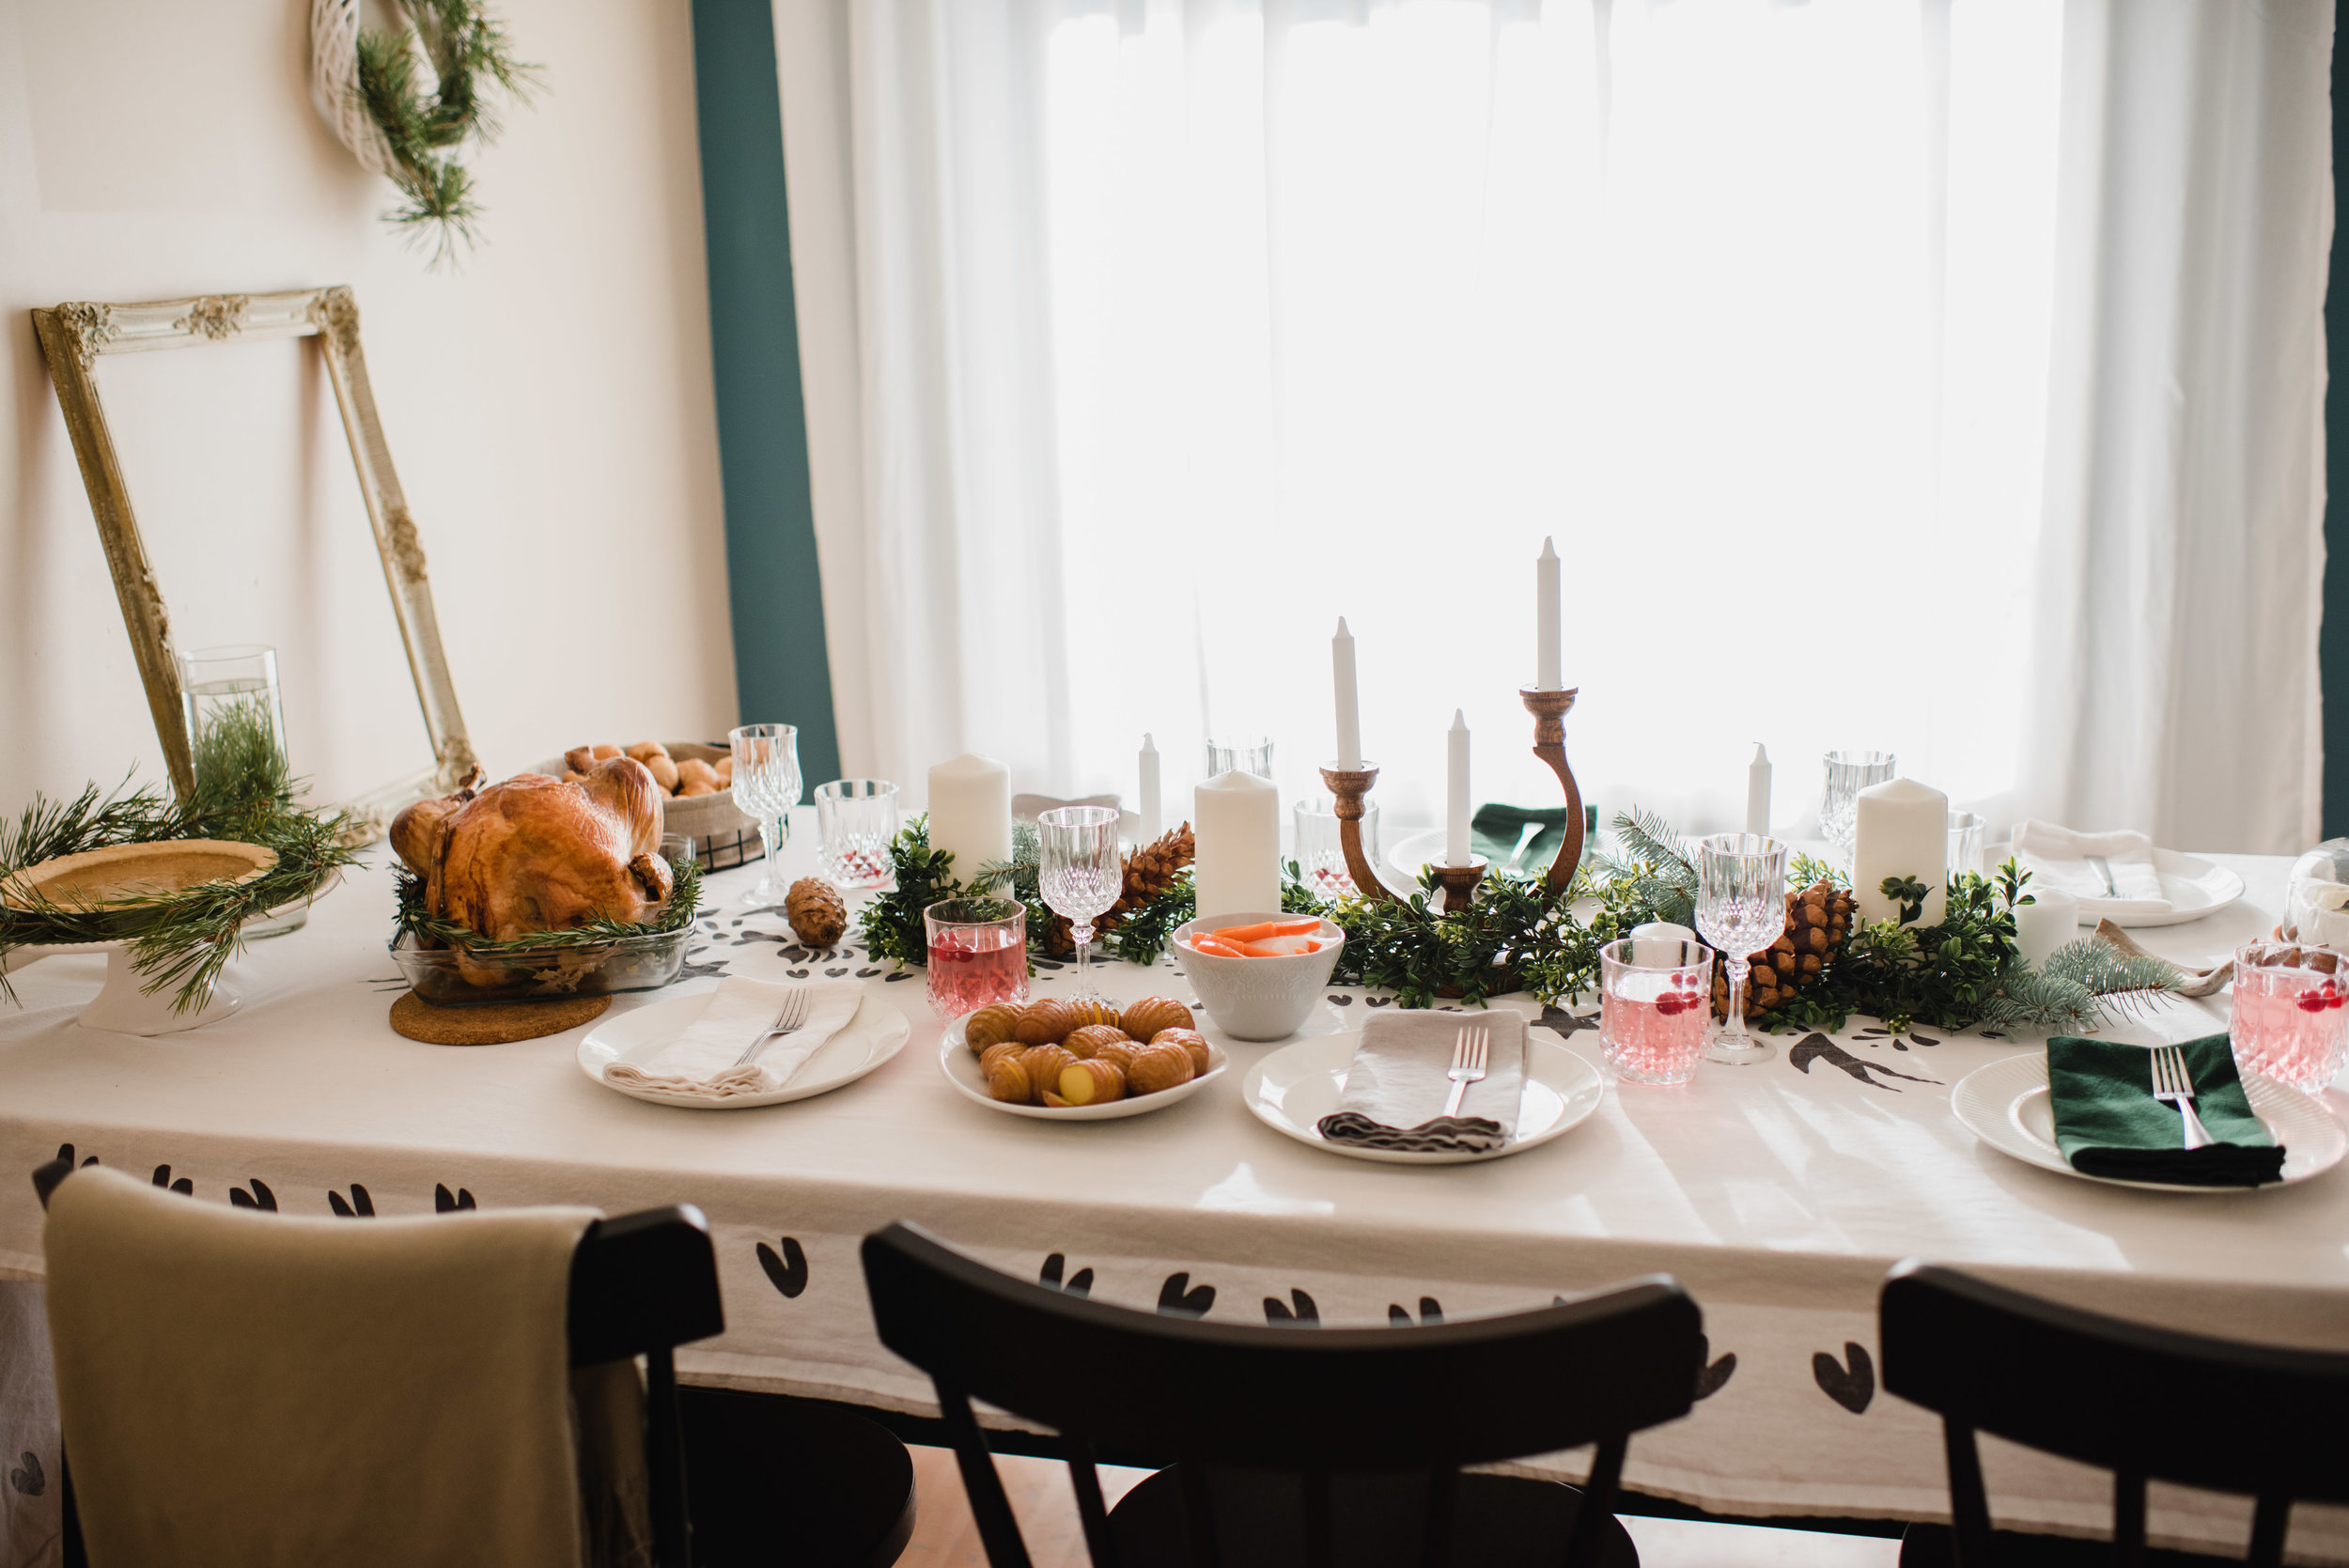 Holiday gathering recipes by The Nomadic Wife | Emilie Iggiotti Photography